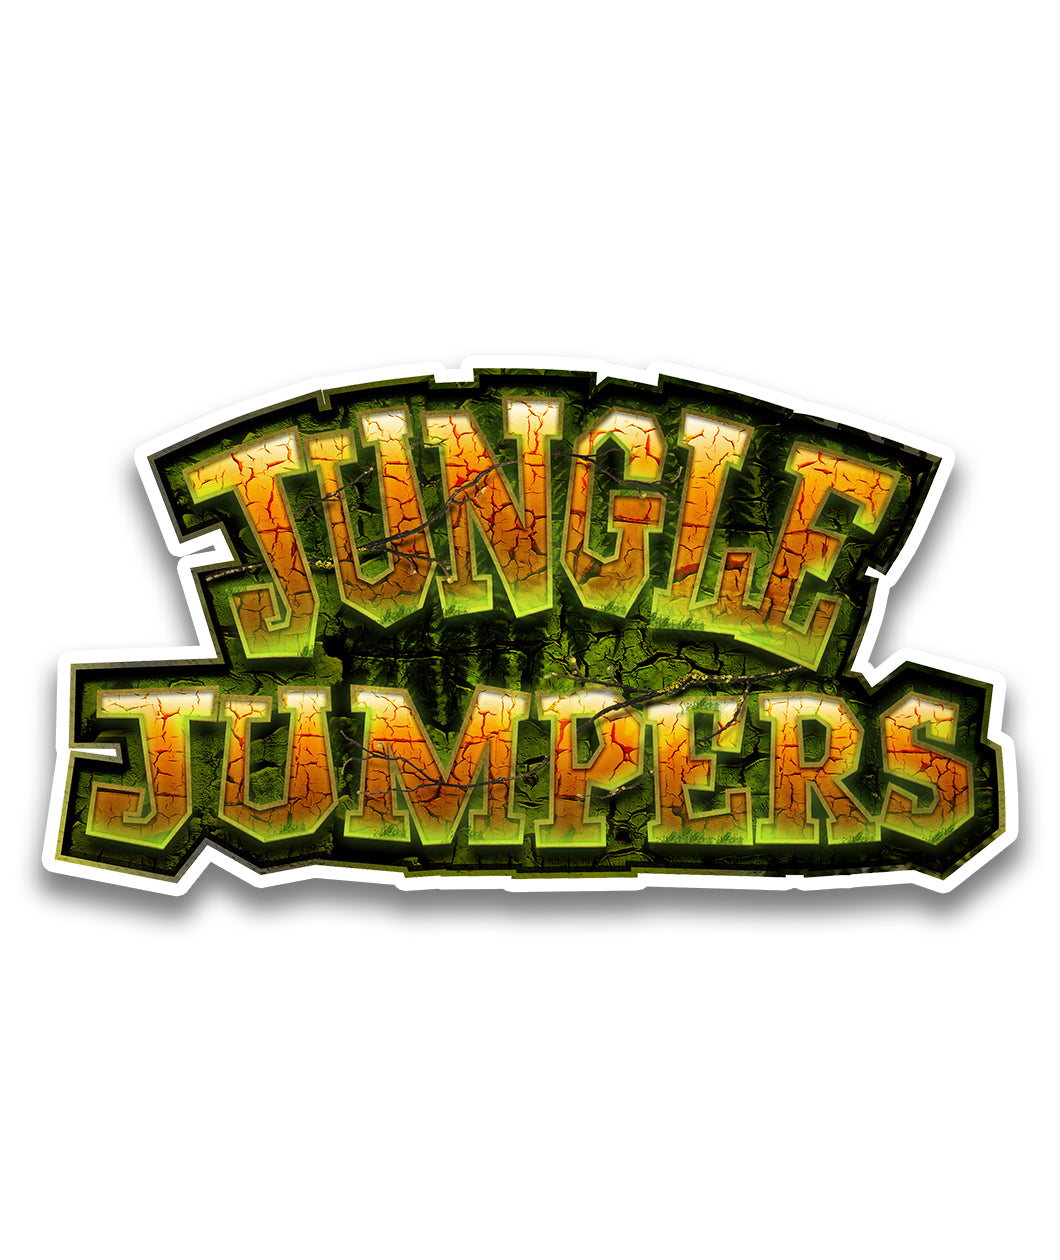 Jungle Jumpers Team Decal